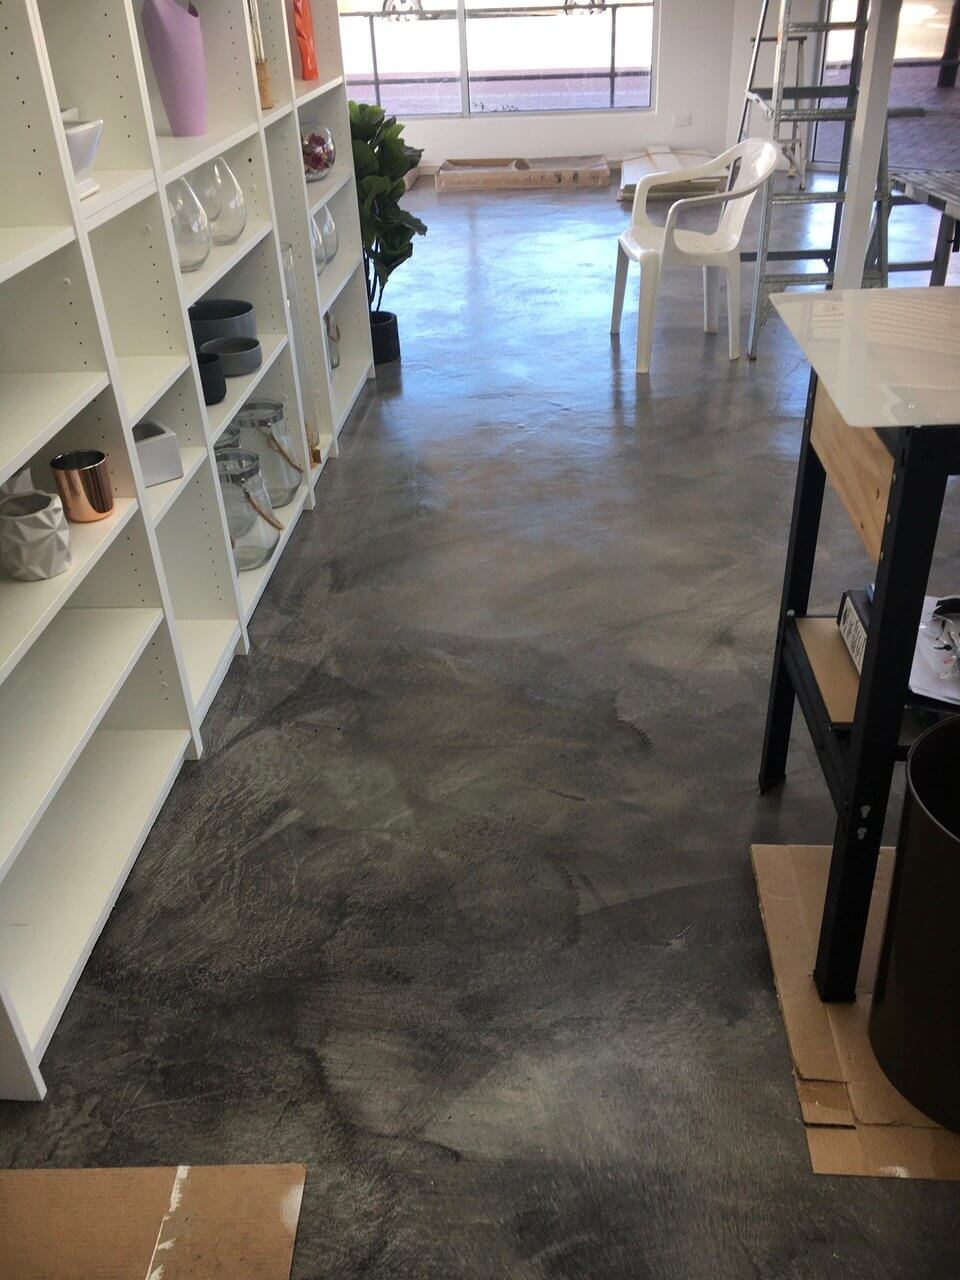 Polished Concrete Overlay Floors: Pros & Cons